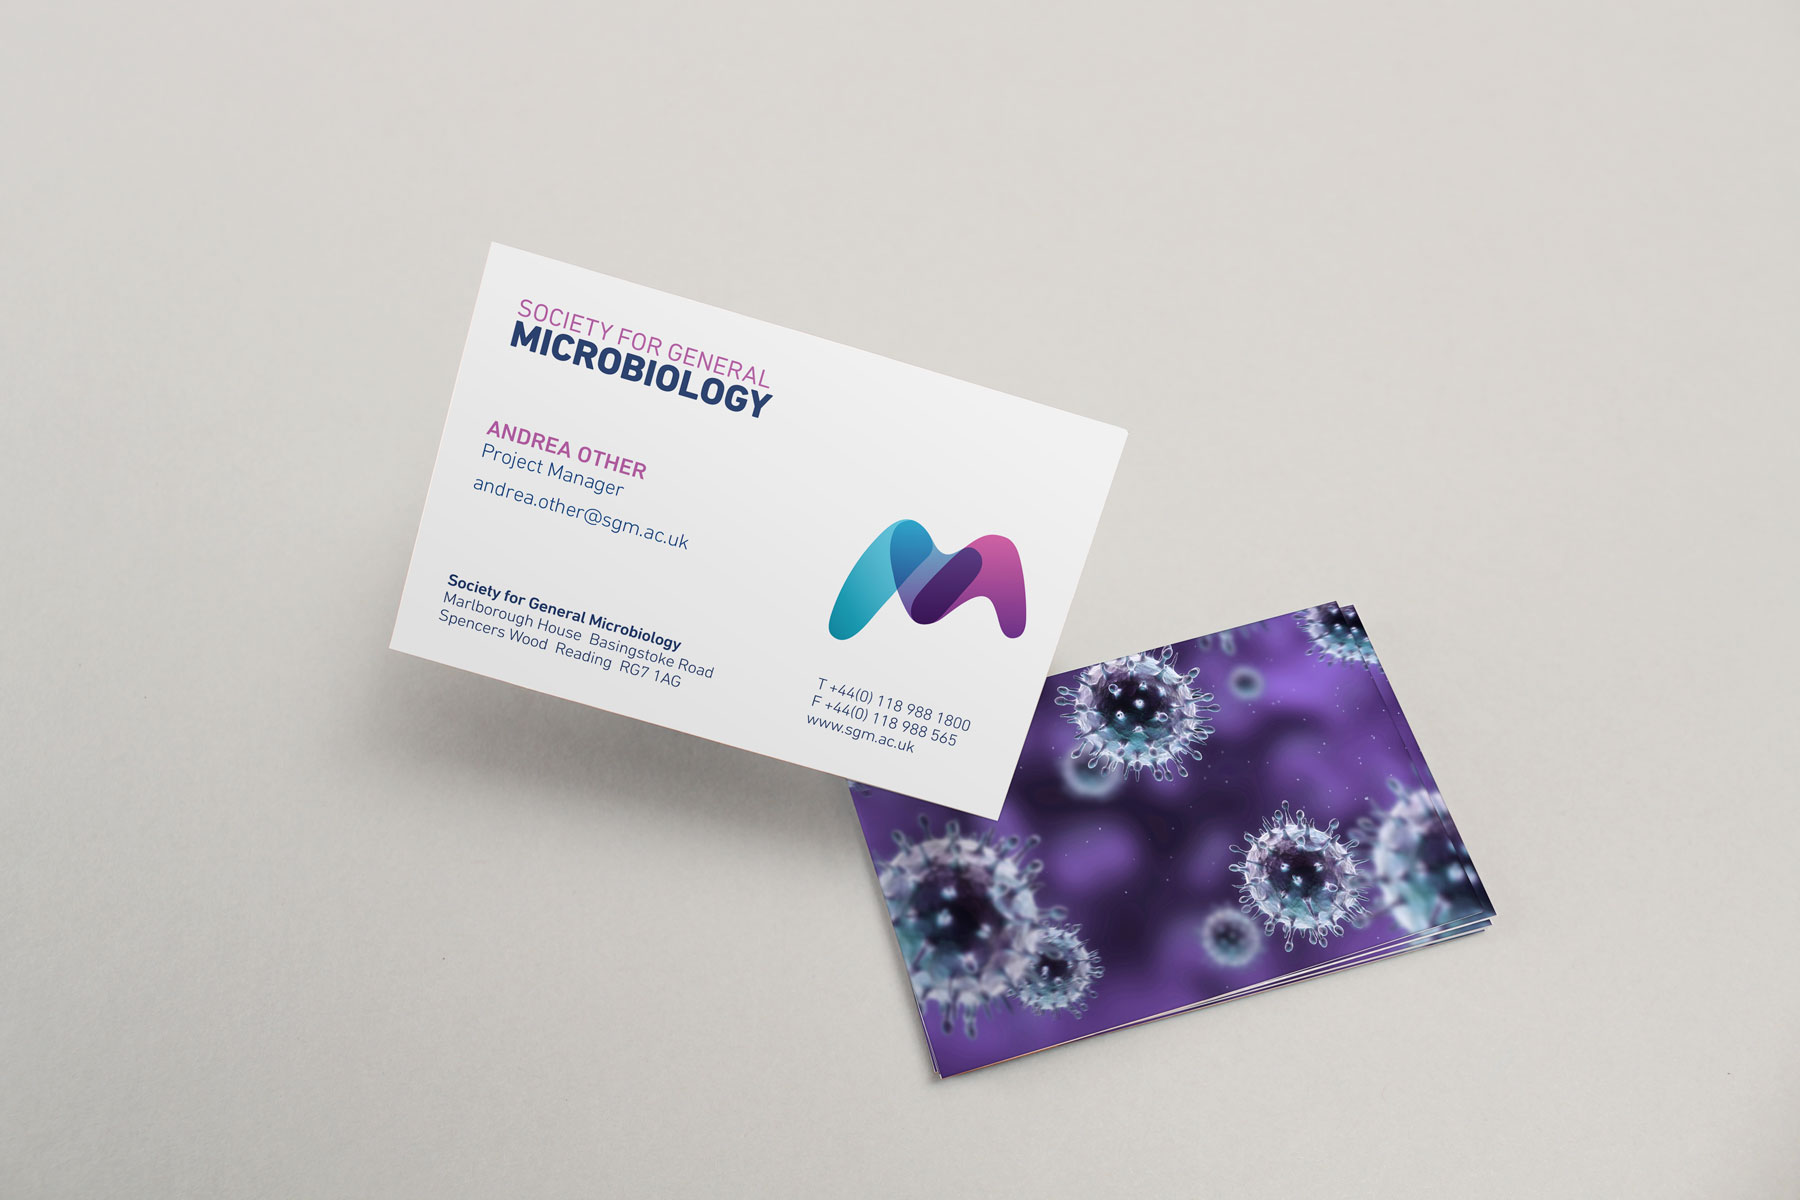 The business card demonstrates how the brand can be distilled into a more corporate environment.